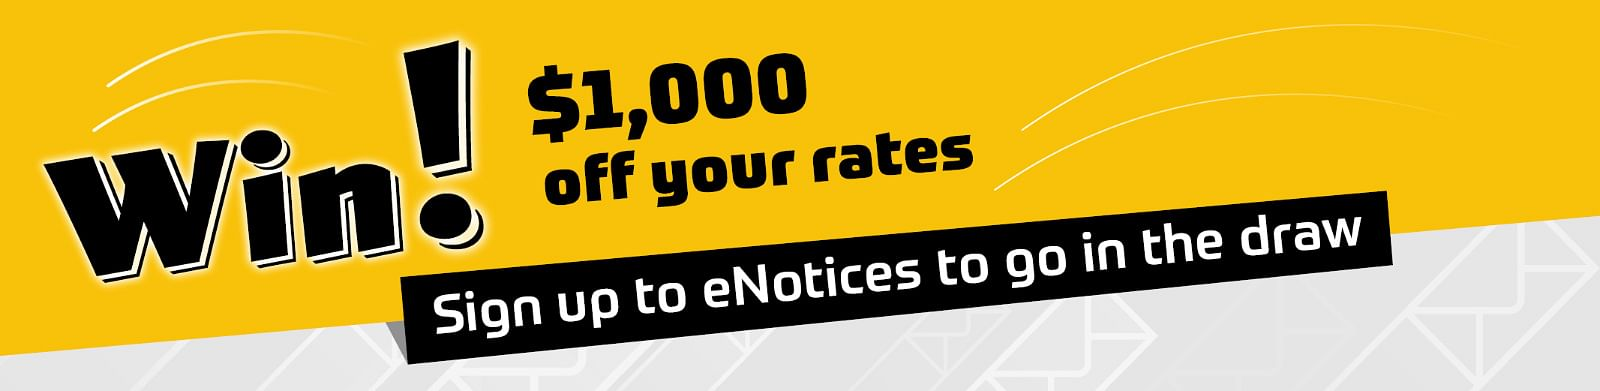 Win $1,000.00 off your rates.